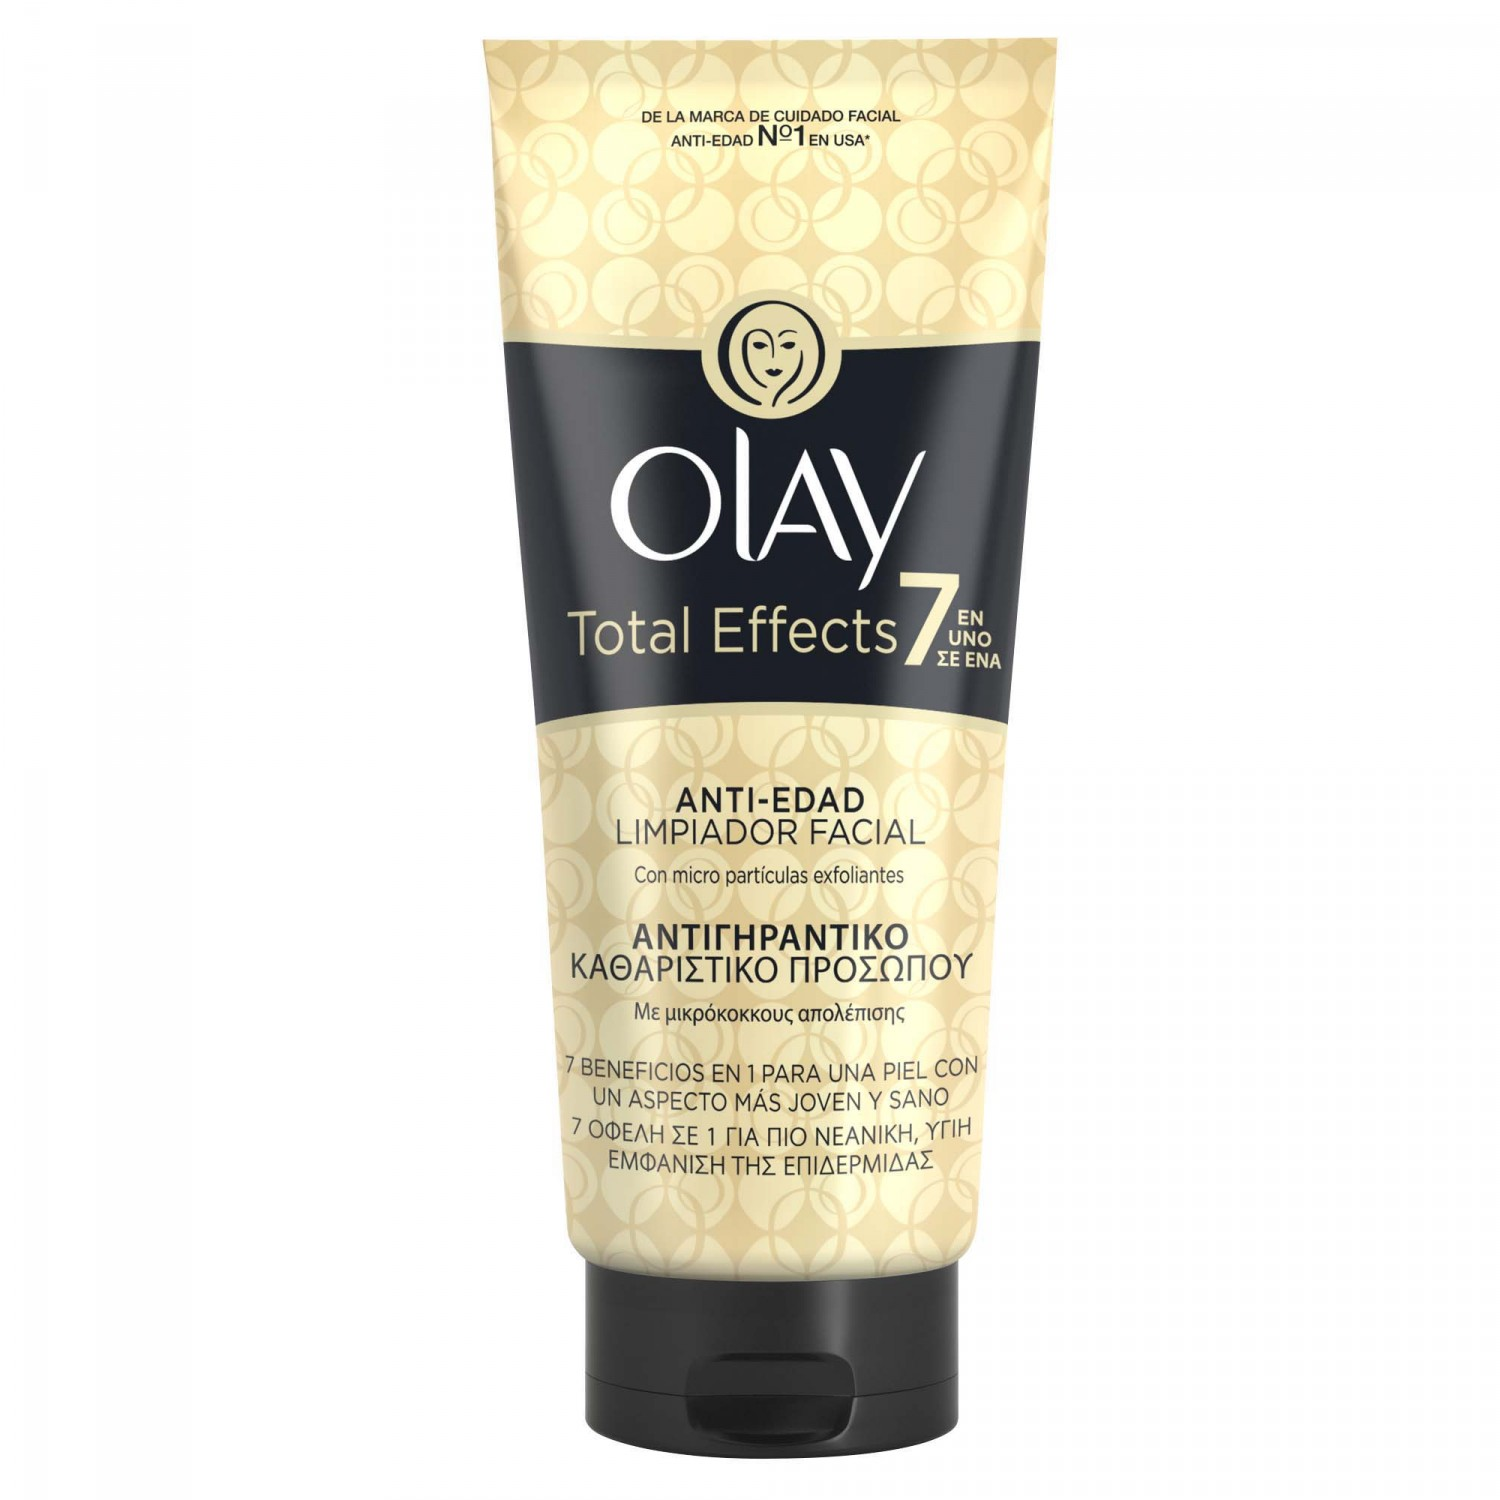 Olay tot effects gel limpiador 7 en 1 antiedad tubo de 15cl.